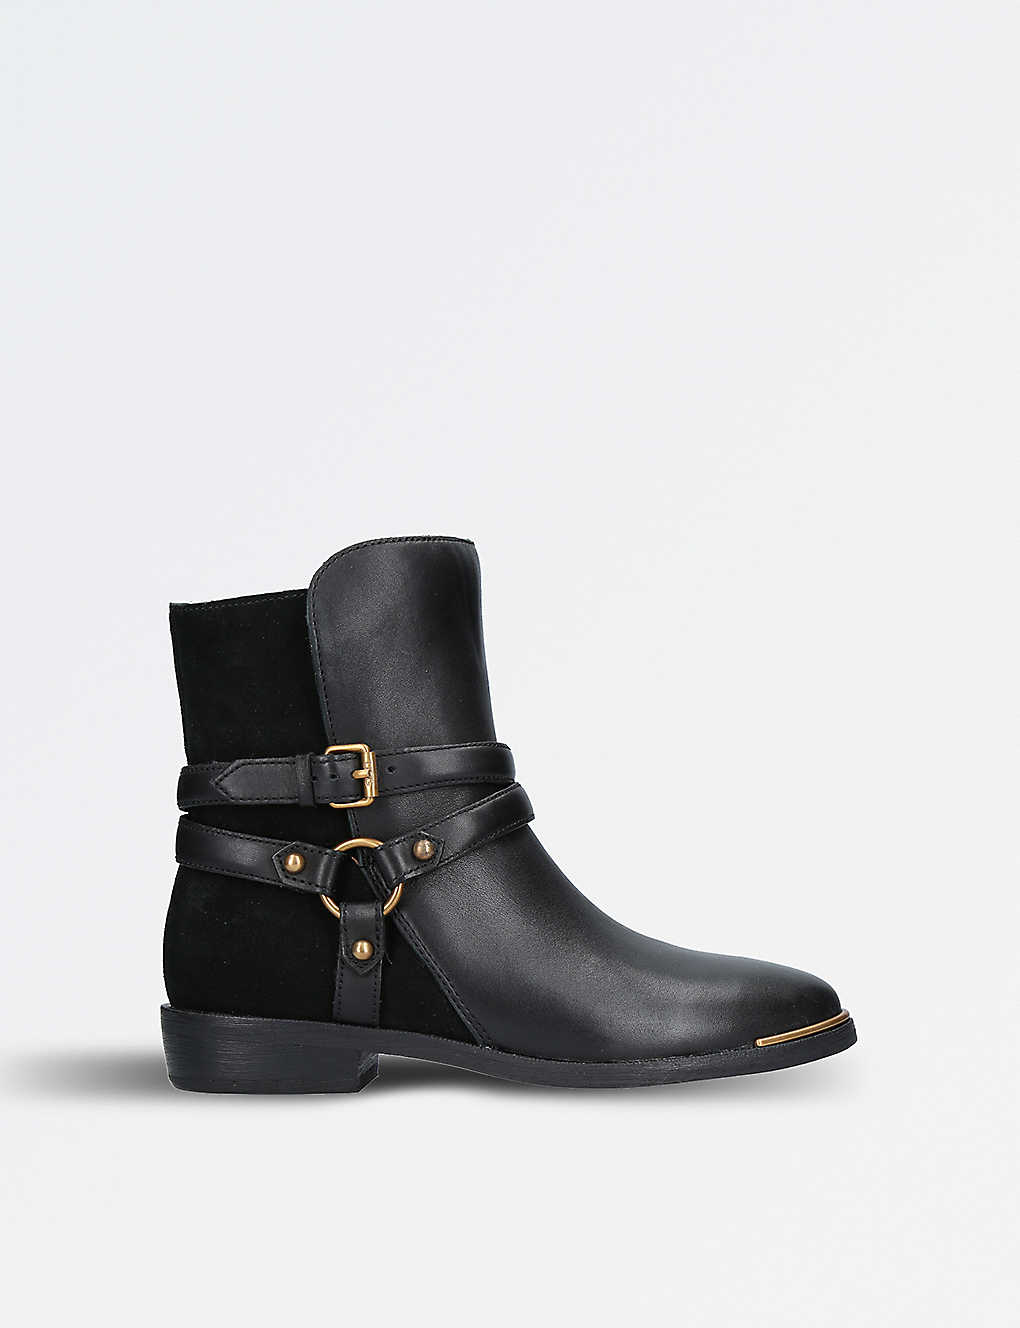 6fa4bf6c974 UGG - Kelby leather and suede ankle boots | Selfridges.com